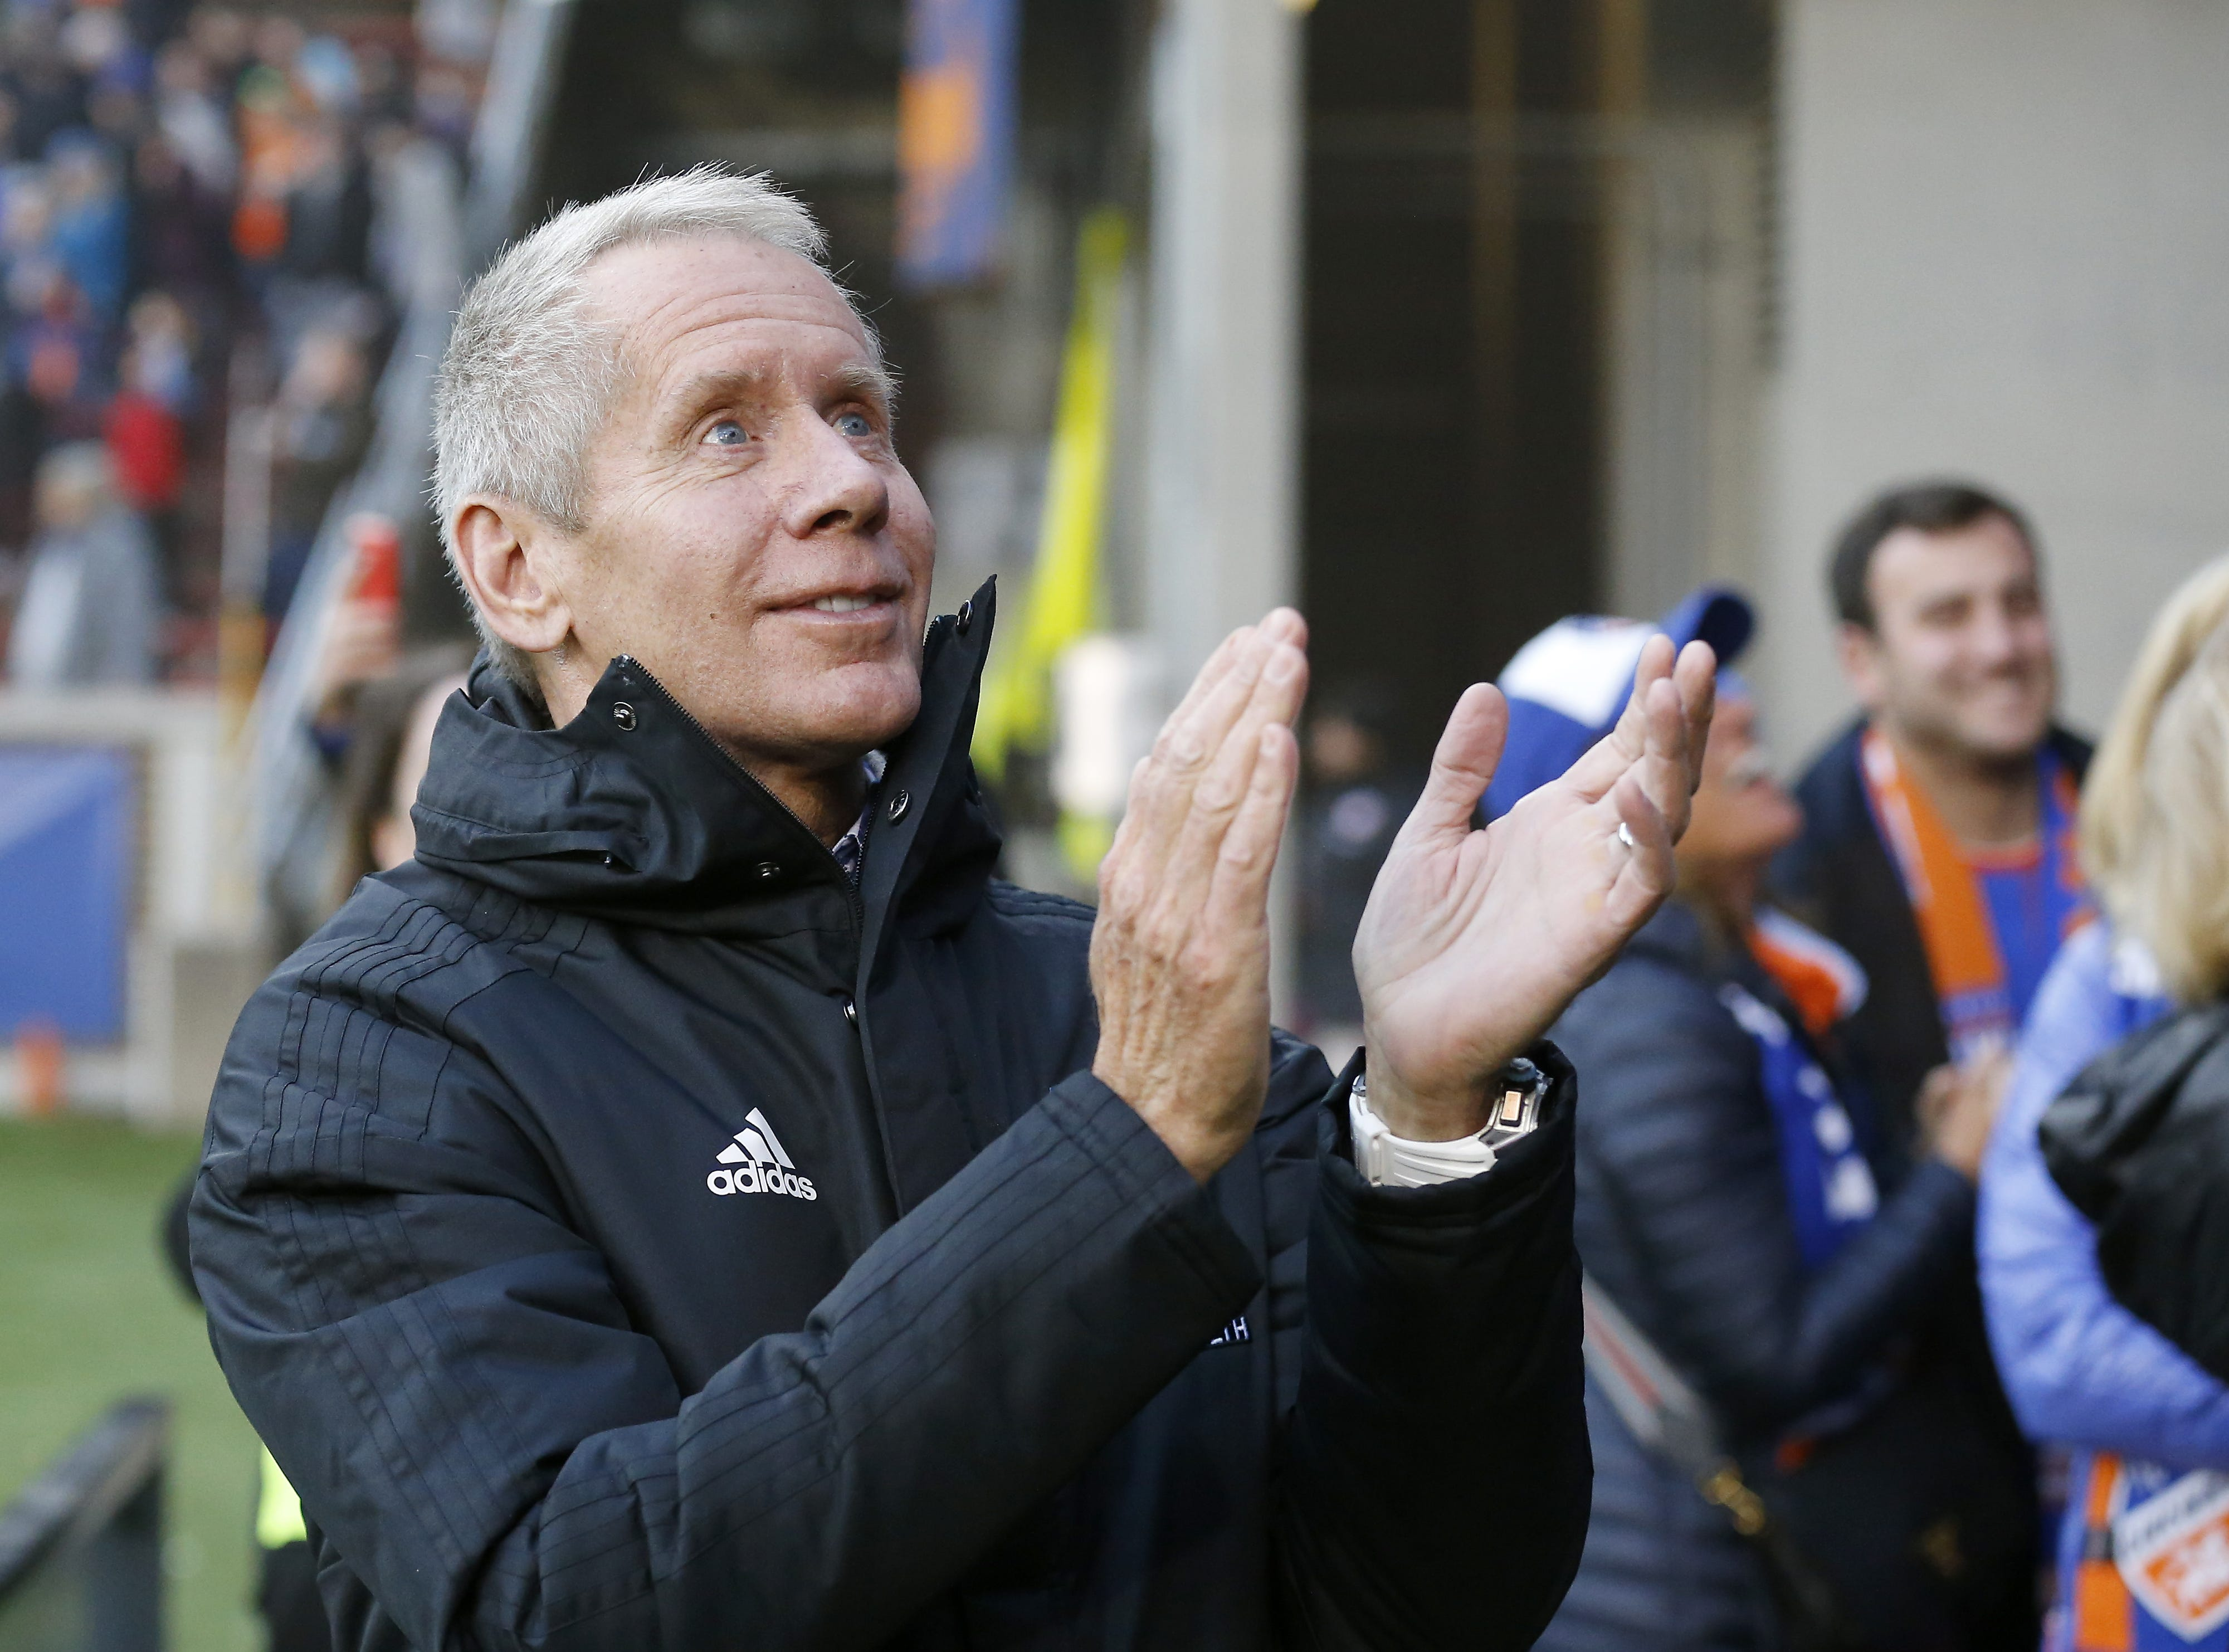 FC Cincinnati owner Carl Lindner applauds fans in the Bailey as it celebrates a win after the MLS match between FC Cincinnati and the Portland Timbers at Nippert Stadium in Cincinnati on Sunday, March 17, 2019. FC Cincinnati won its first home game as an MLS team, 3-0.